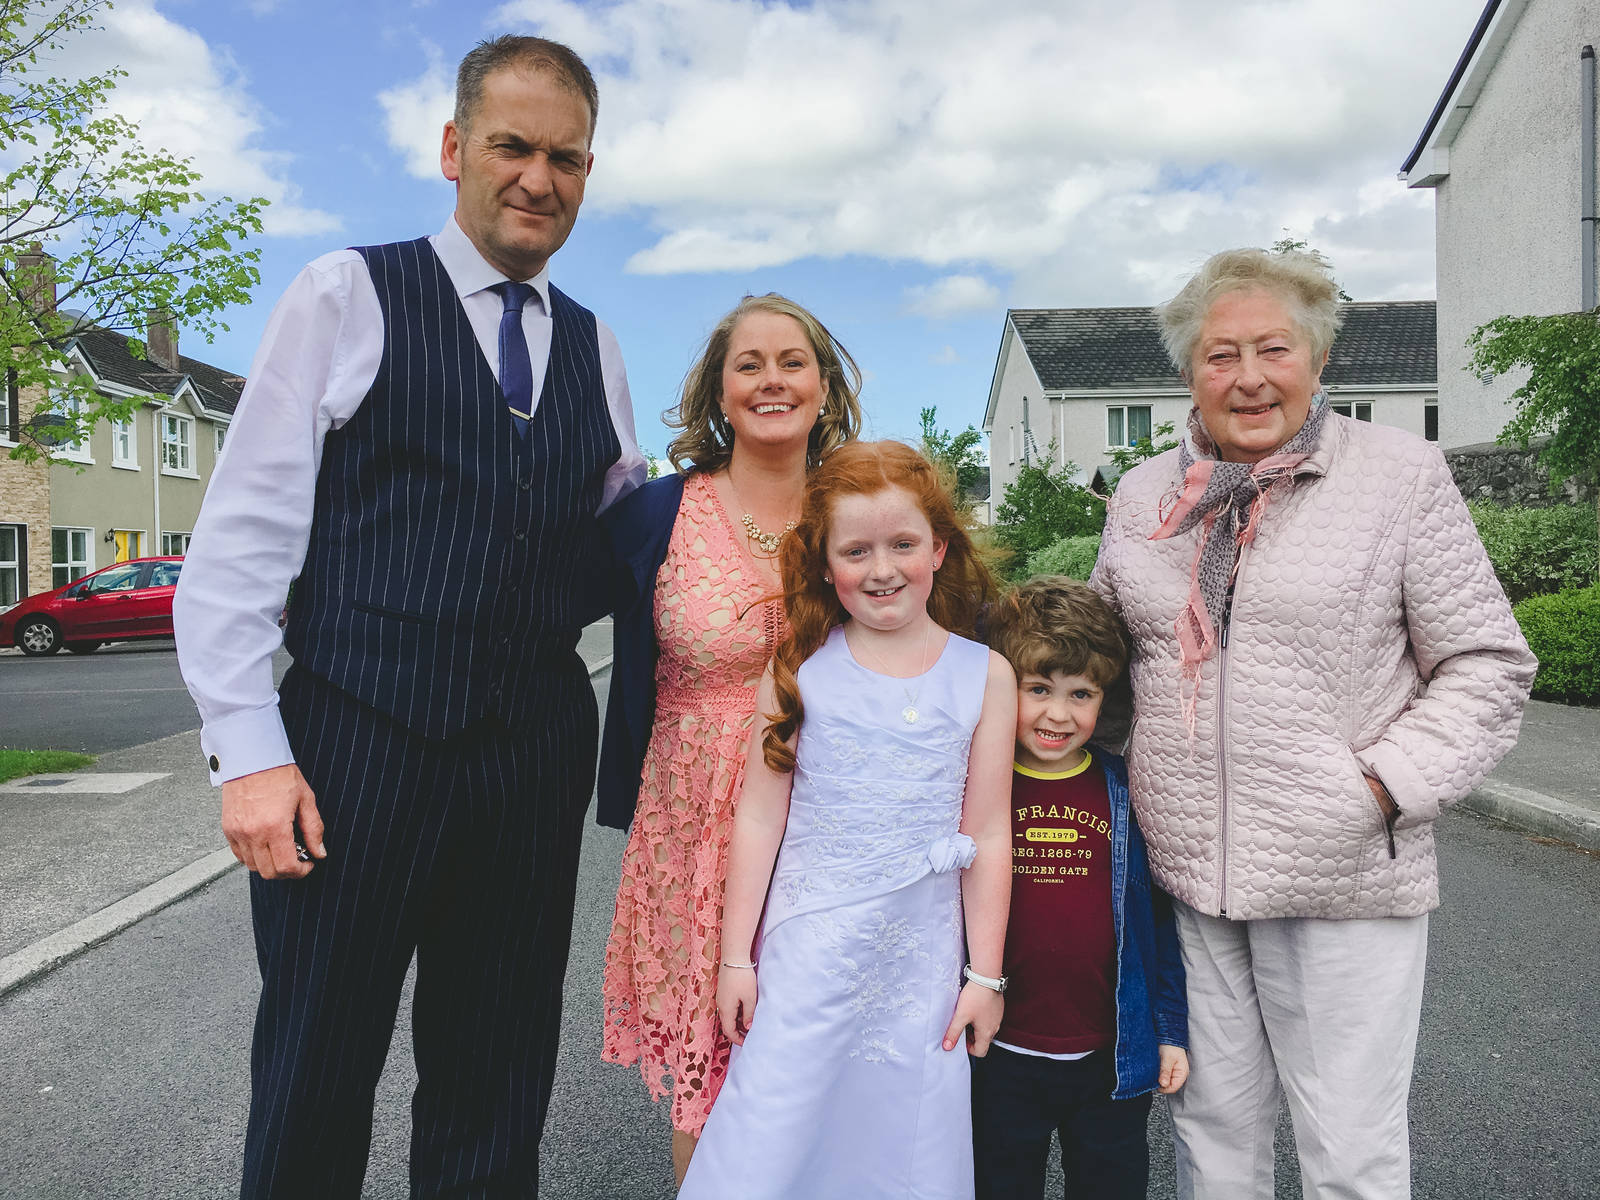 The family Grealish in Loughrea